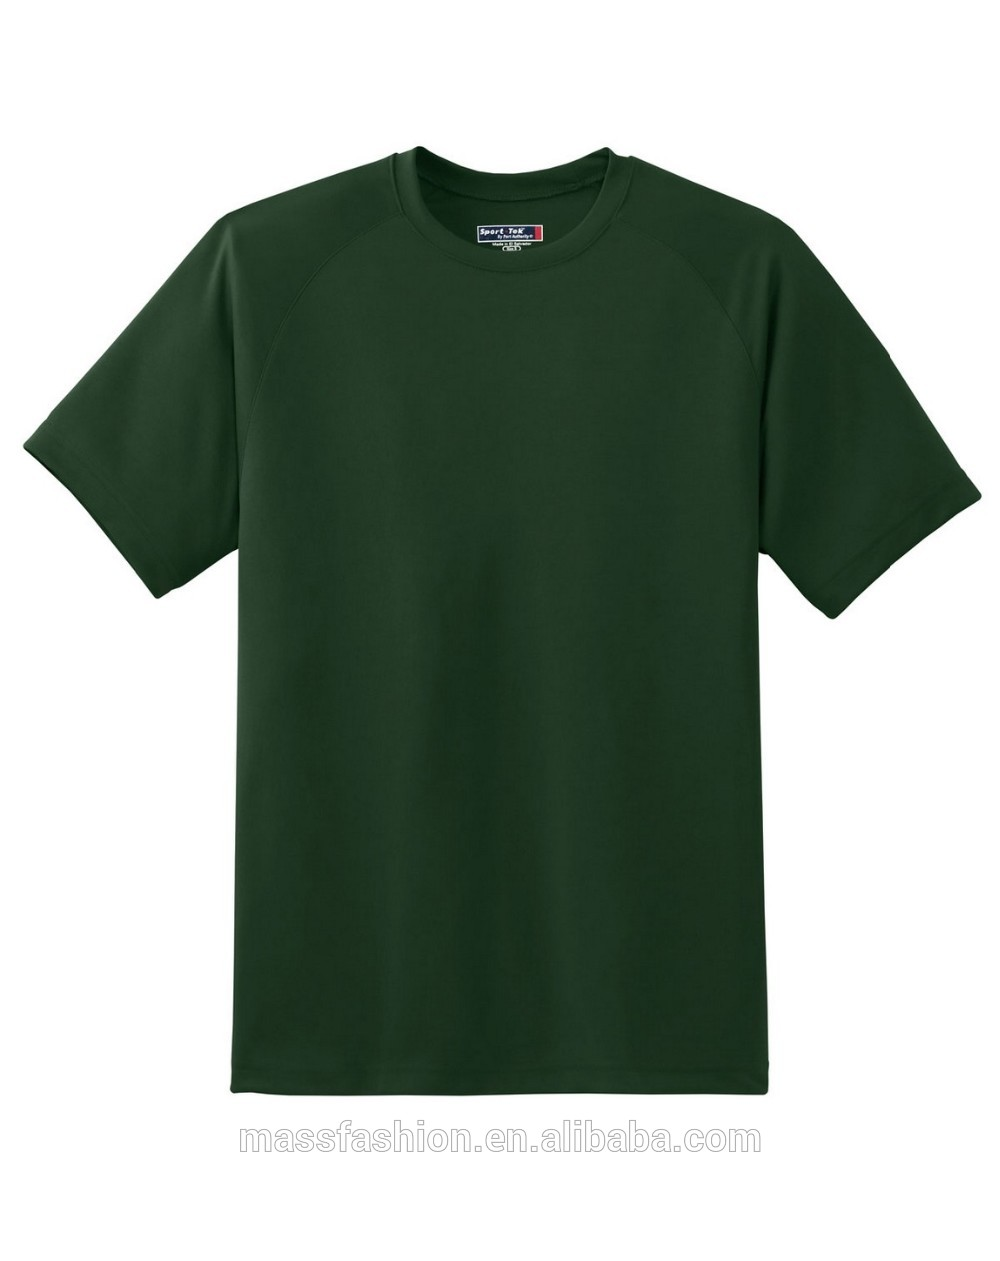 Wholesale Military Green T Shirt Plain Army Blank T Shirt - Buy Military  Green T Shirt b1ab1292d04